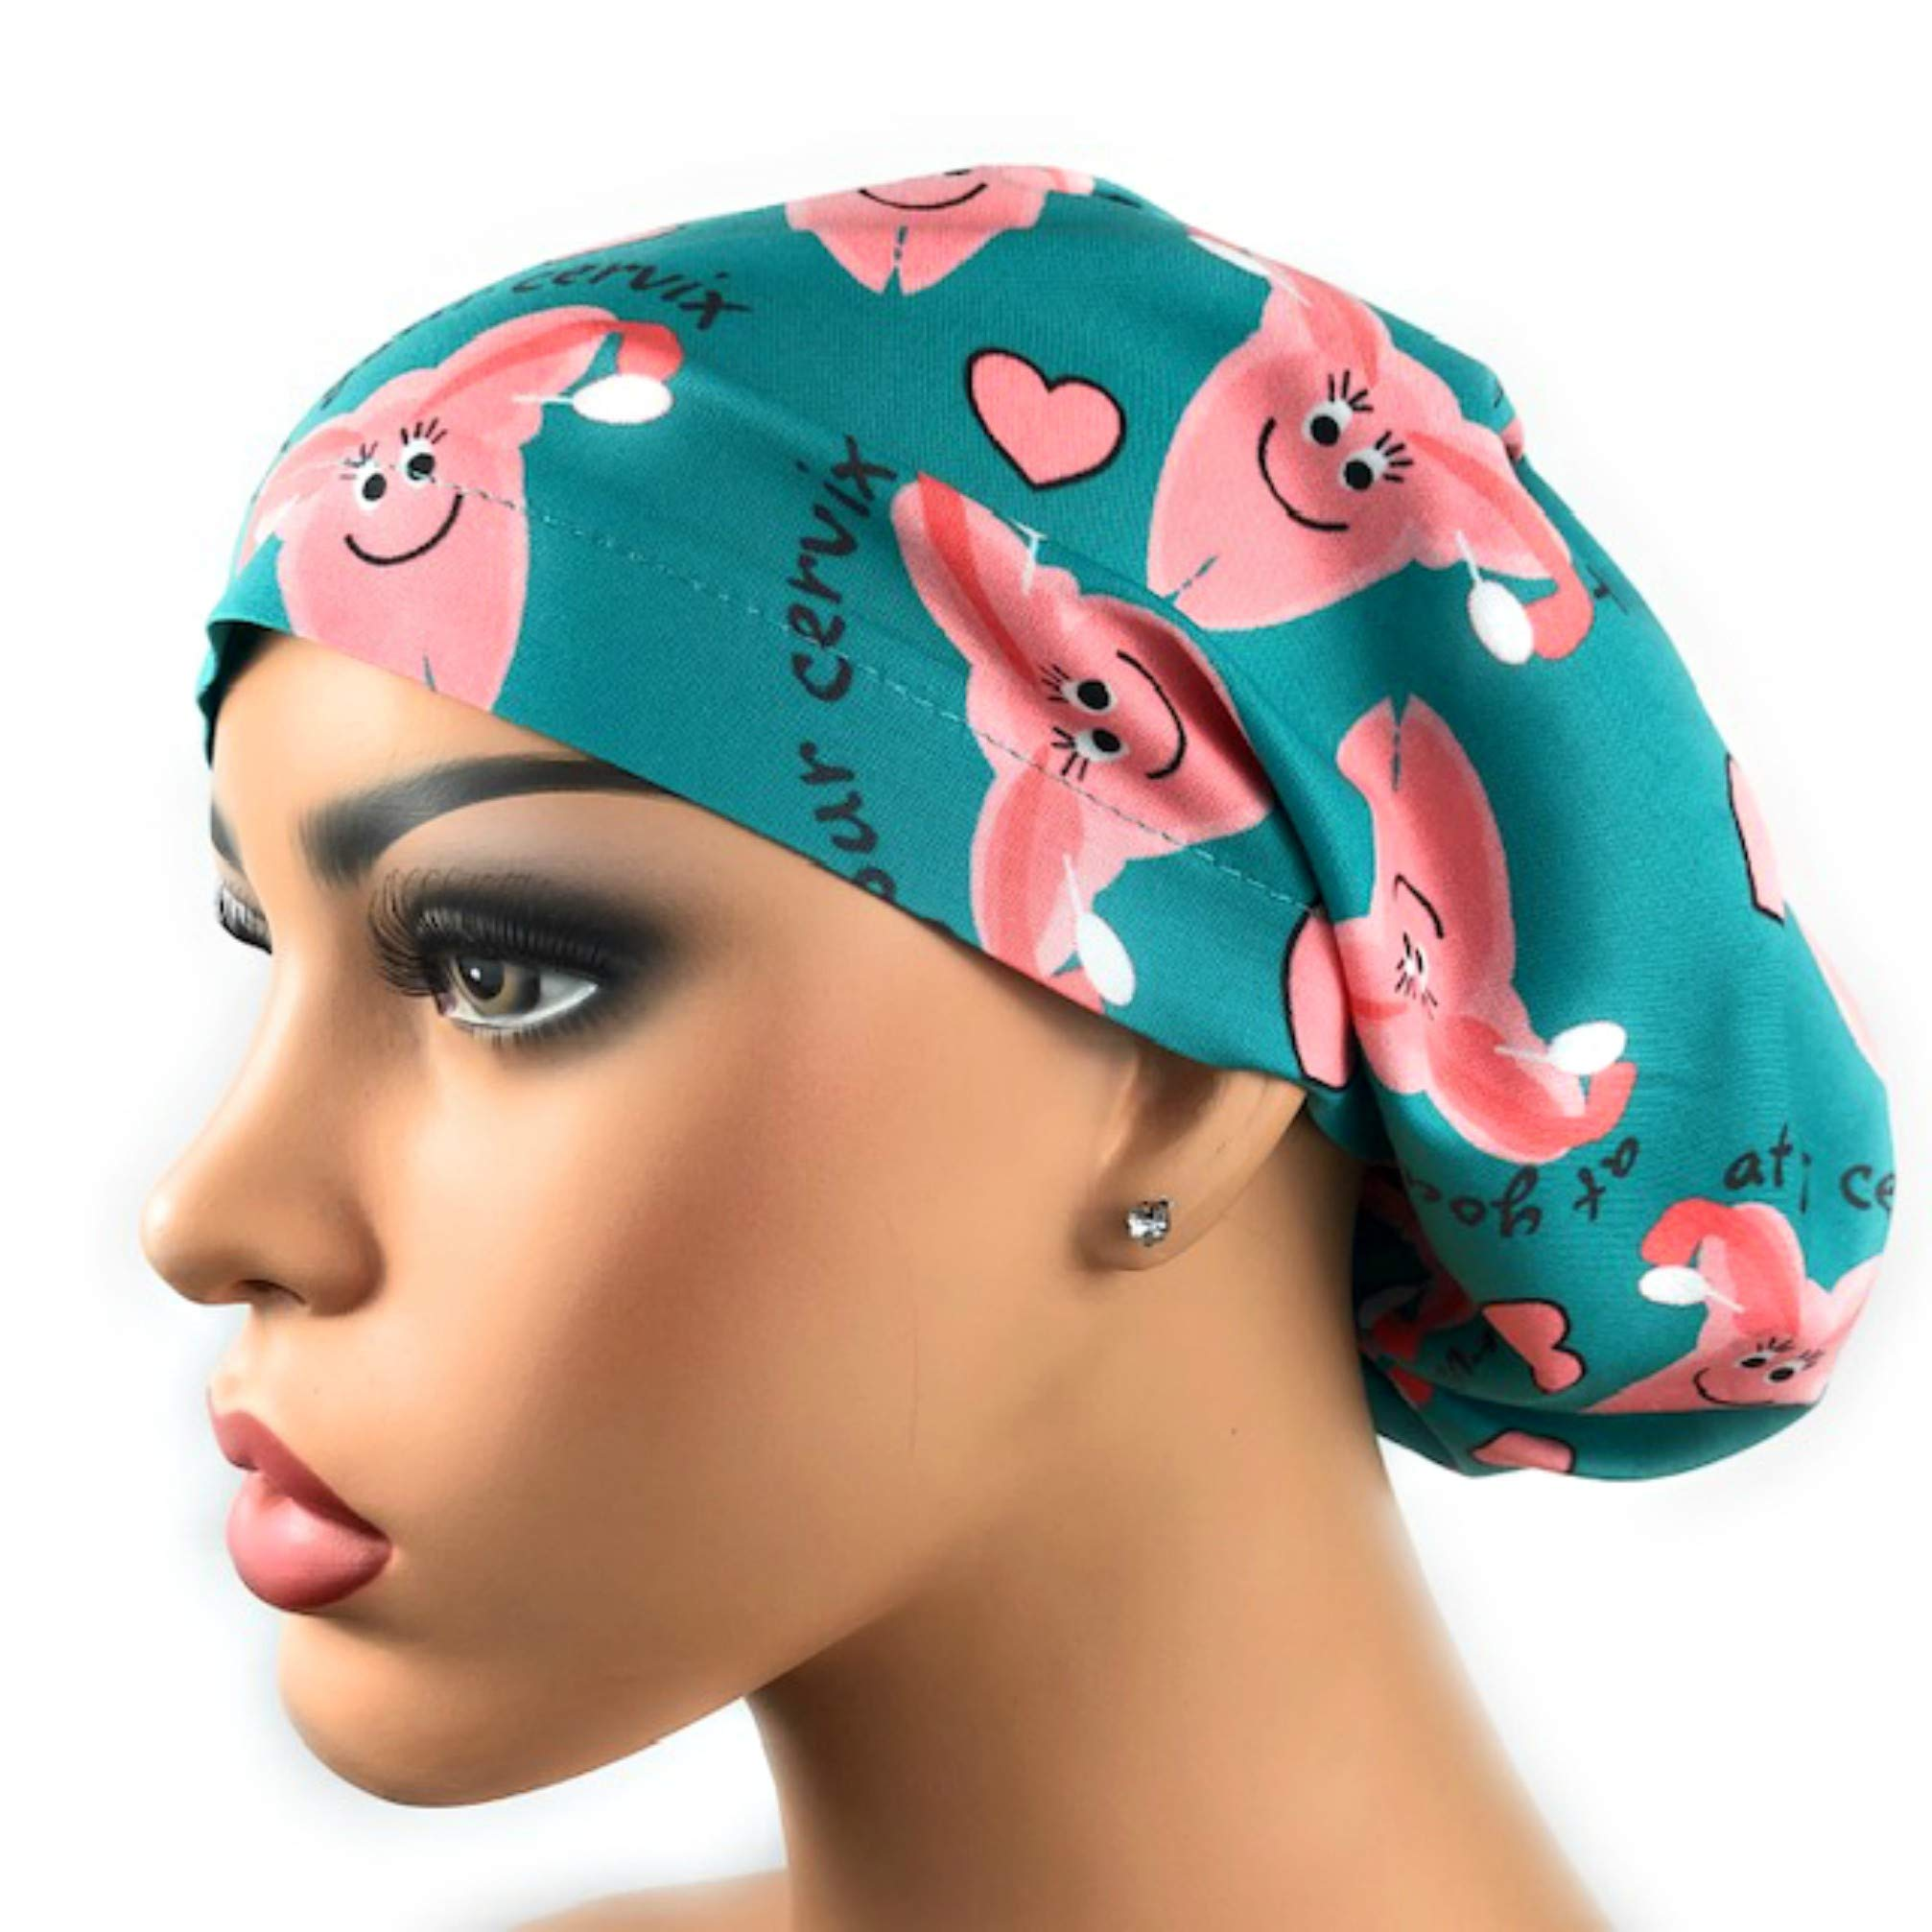 Womens Adjustable Bouffant Scrub Hat Ponytail Surgical Cap At Your Cervix by DK Scrub Hats